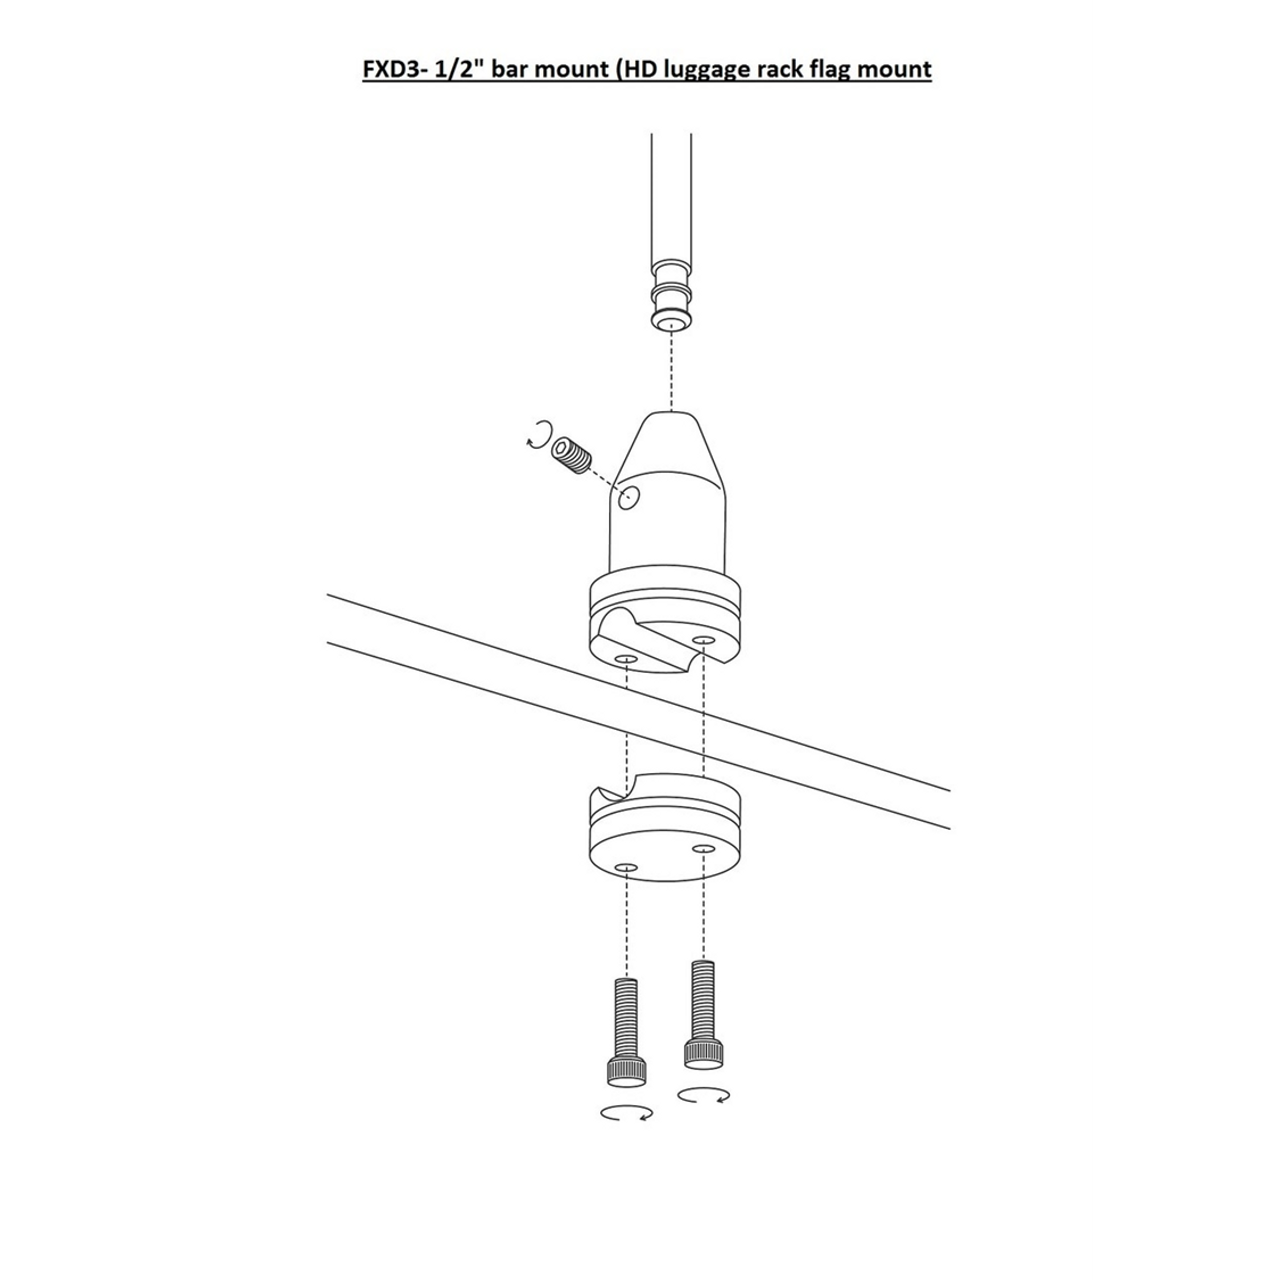 #RFM-FXD3 installation diagram (exploded view)